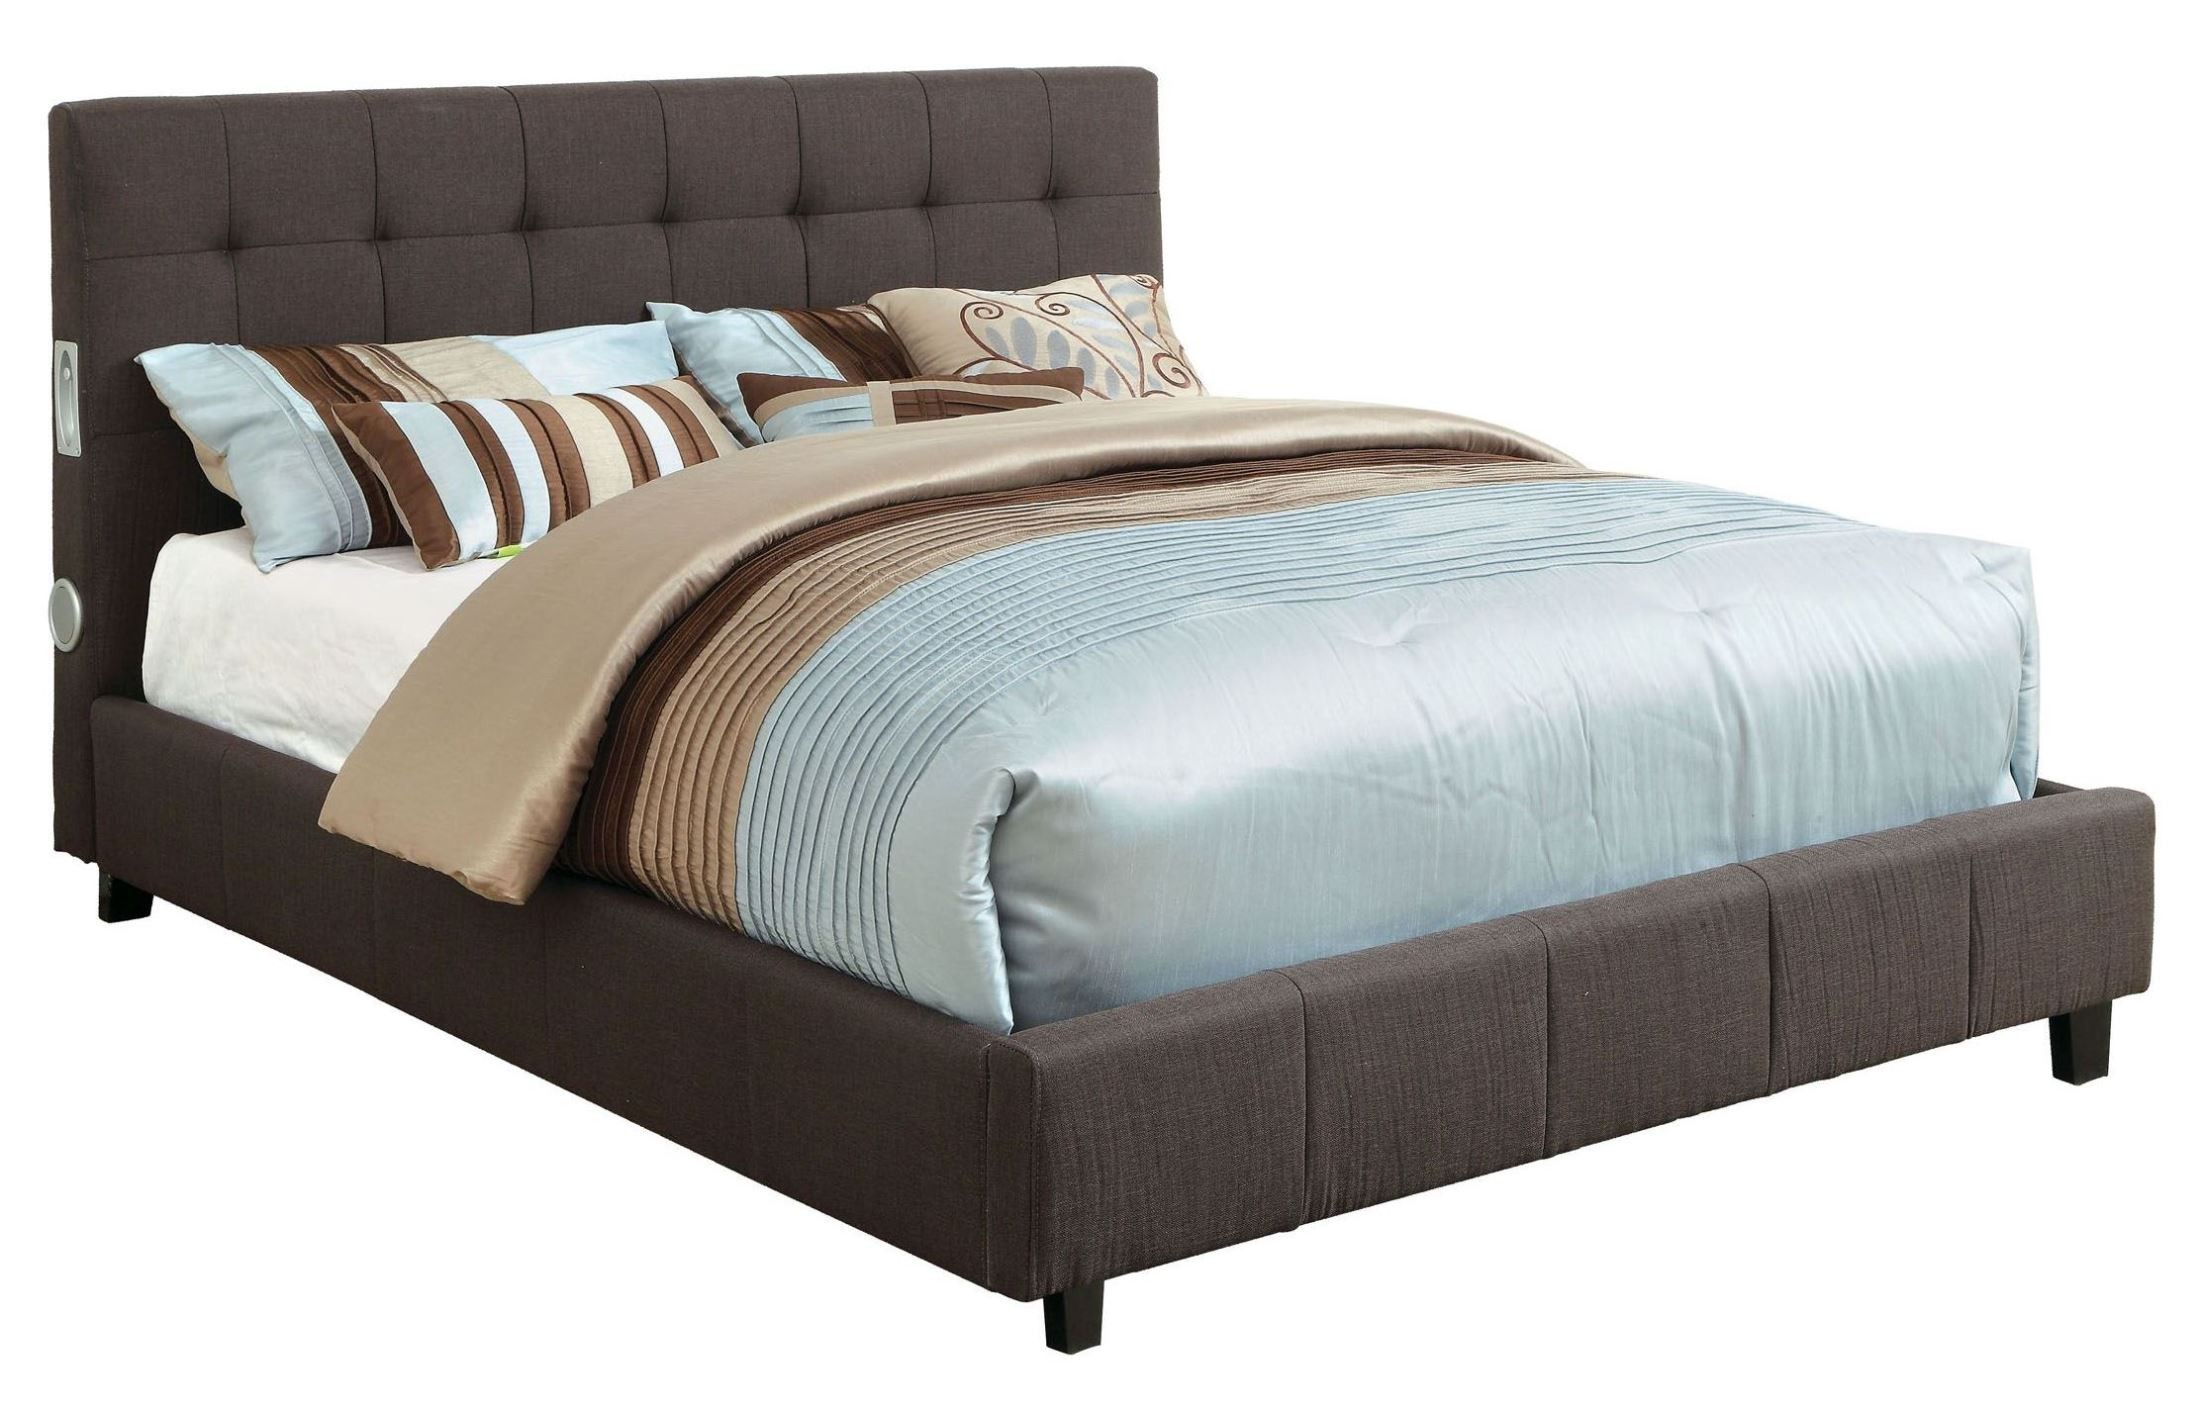 Image Result For Dillan Gray Padded Fabric Queen Size